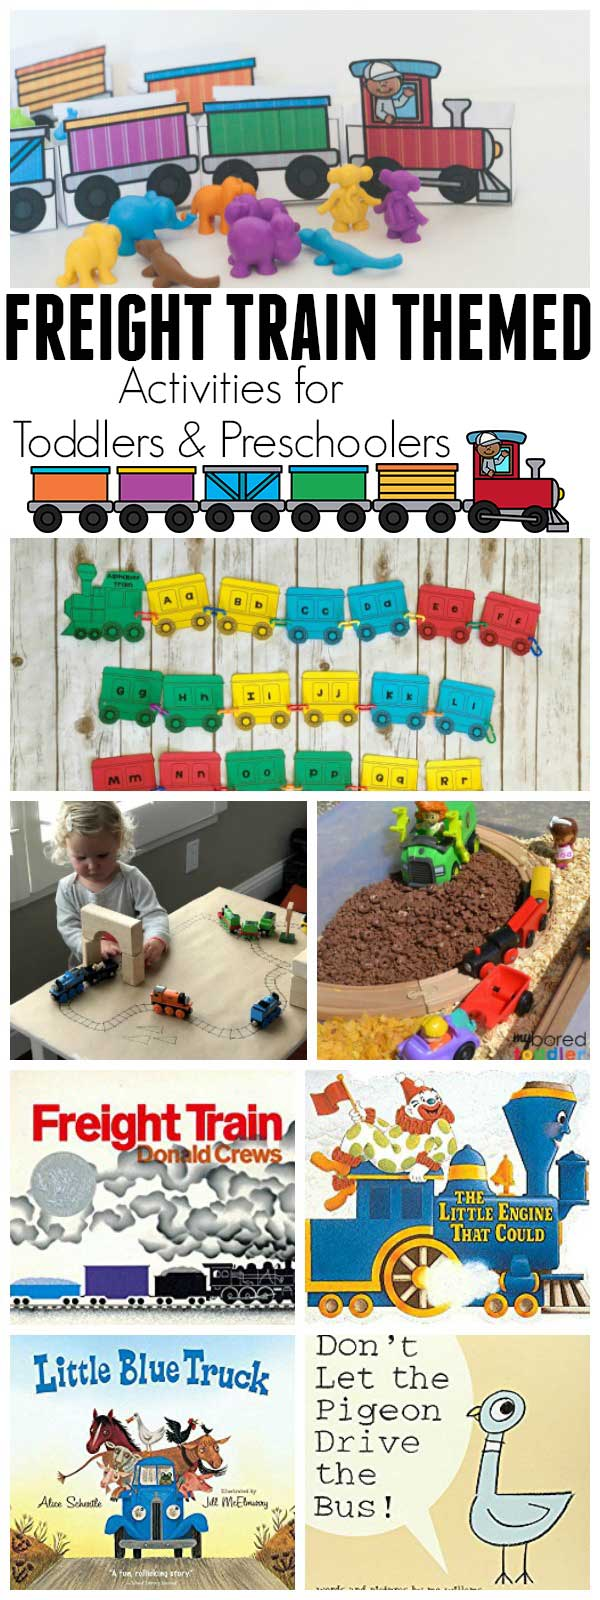 Transportation themed activities and crafts for toddlers and preschoolers based on the classic children's book Freight Train by Donald Crews.